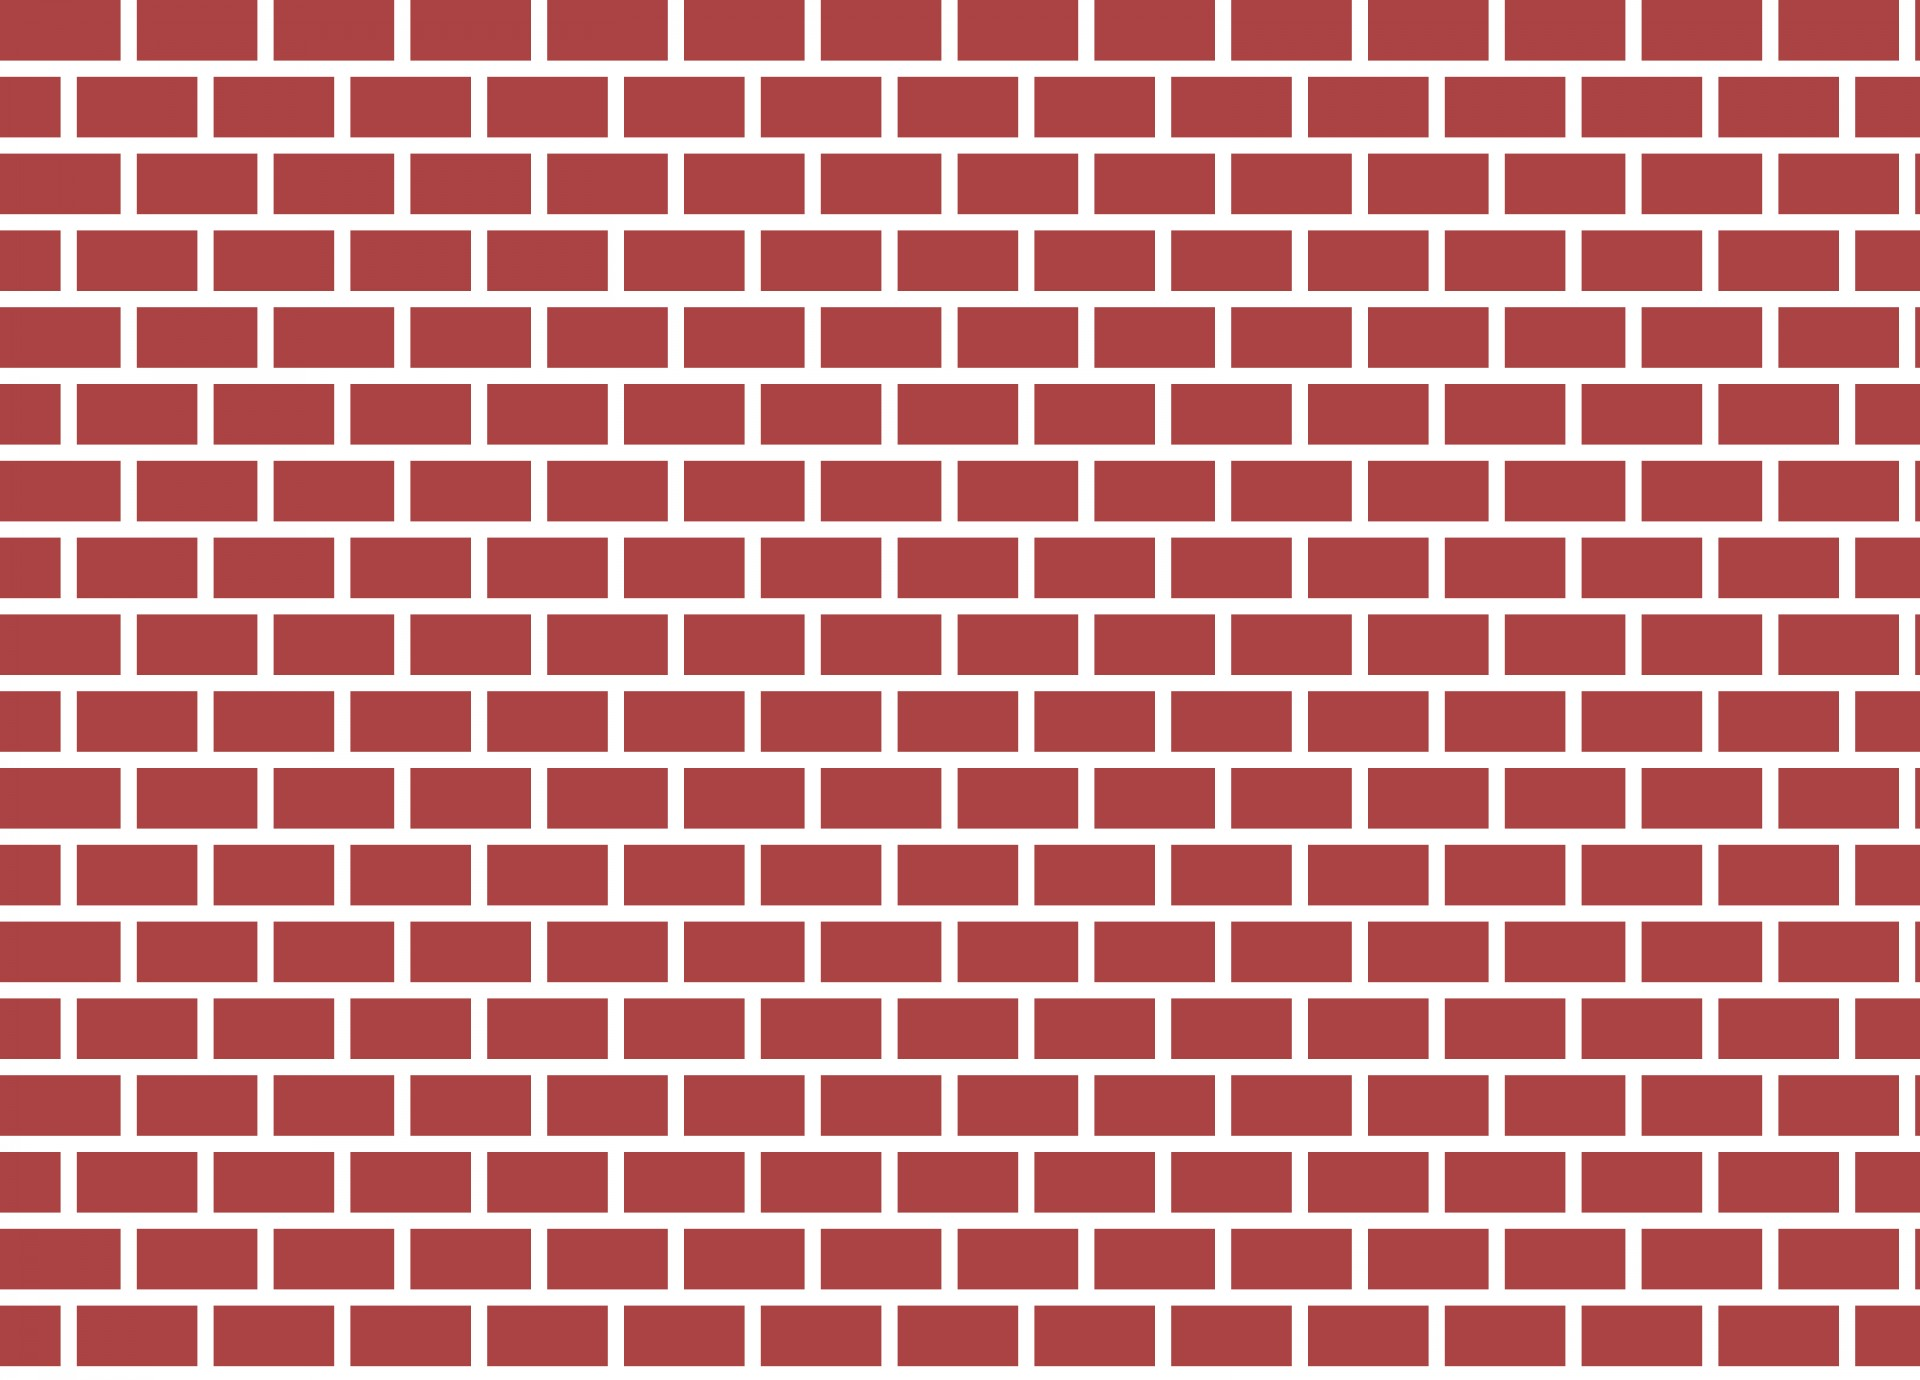 Wall clipart. Red brick free stock